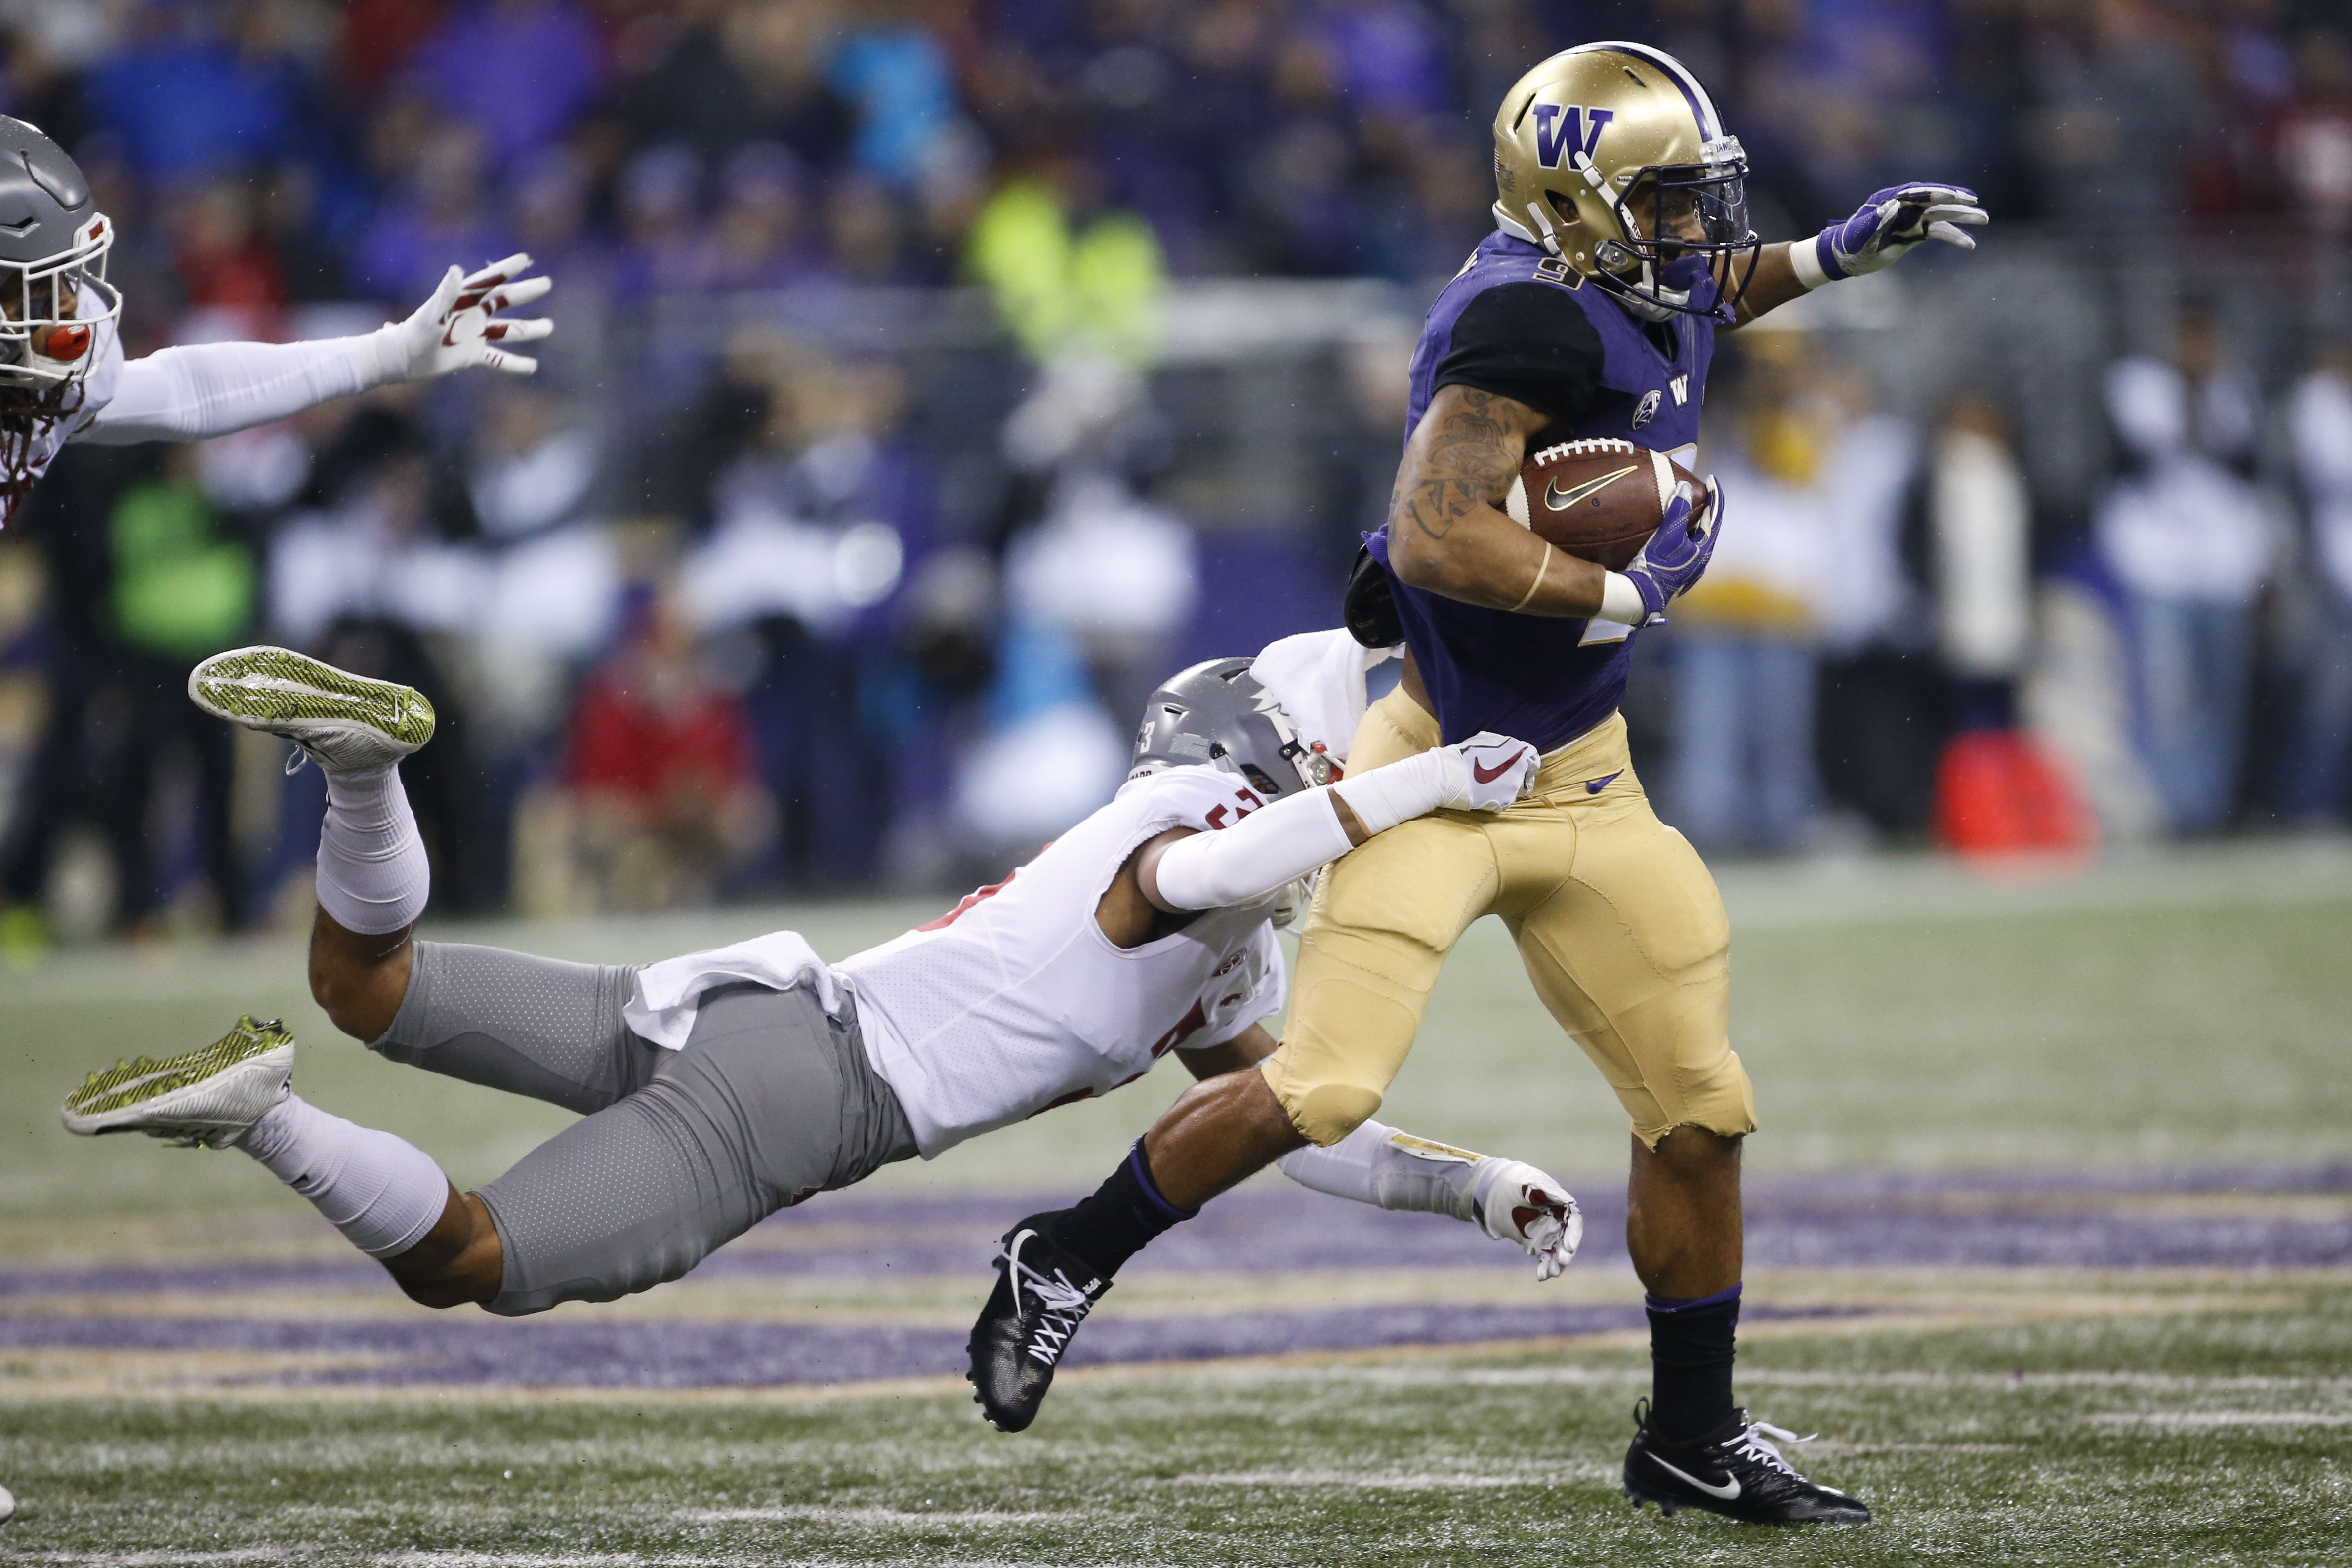 Washington's return to relevance the last couple of years has been a sight to see.